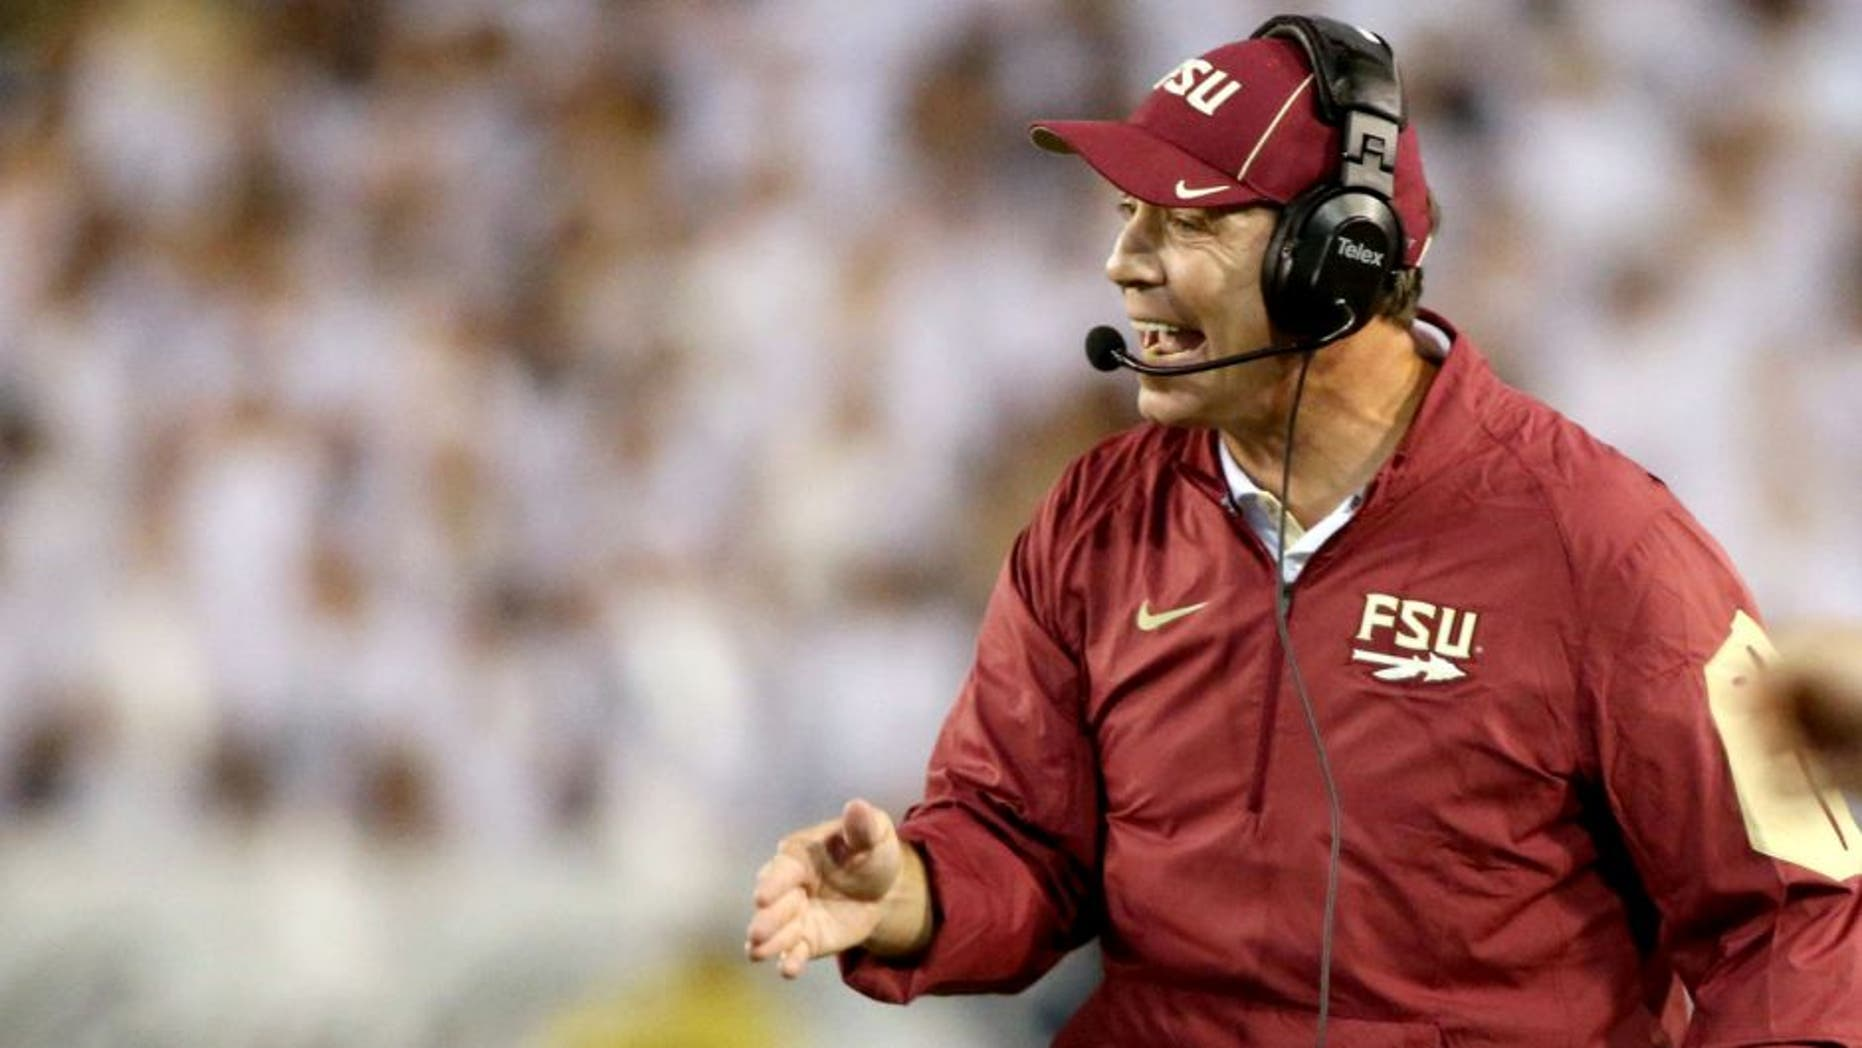 Oct 24, 2015; Atlanta, GA, USA; Florida State Seminoles head coach Jimbo Fisher argues a call with an official during the fourth quarter of their game against the Georgia Tech Yellow Jackets at Bobby Dodd Stadium. Georgia Tech won 22-16. Mandatory Credit: Jason Getz-USA TODAY Sports